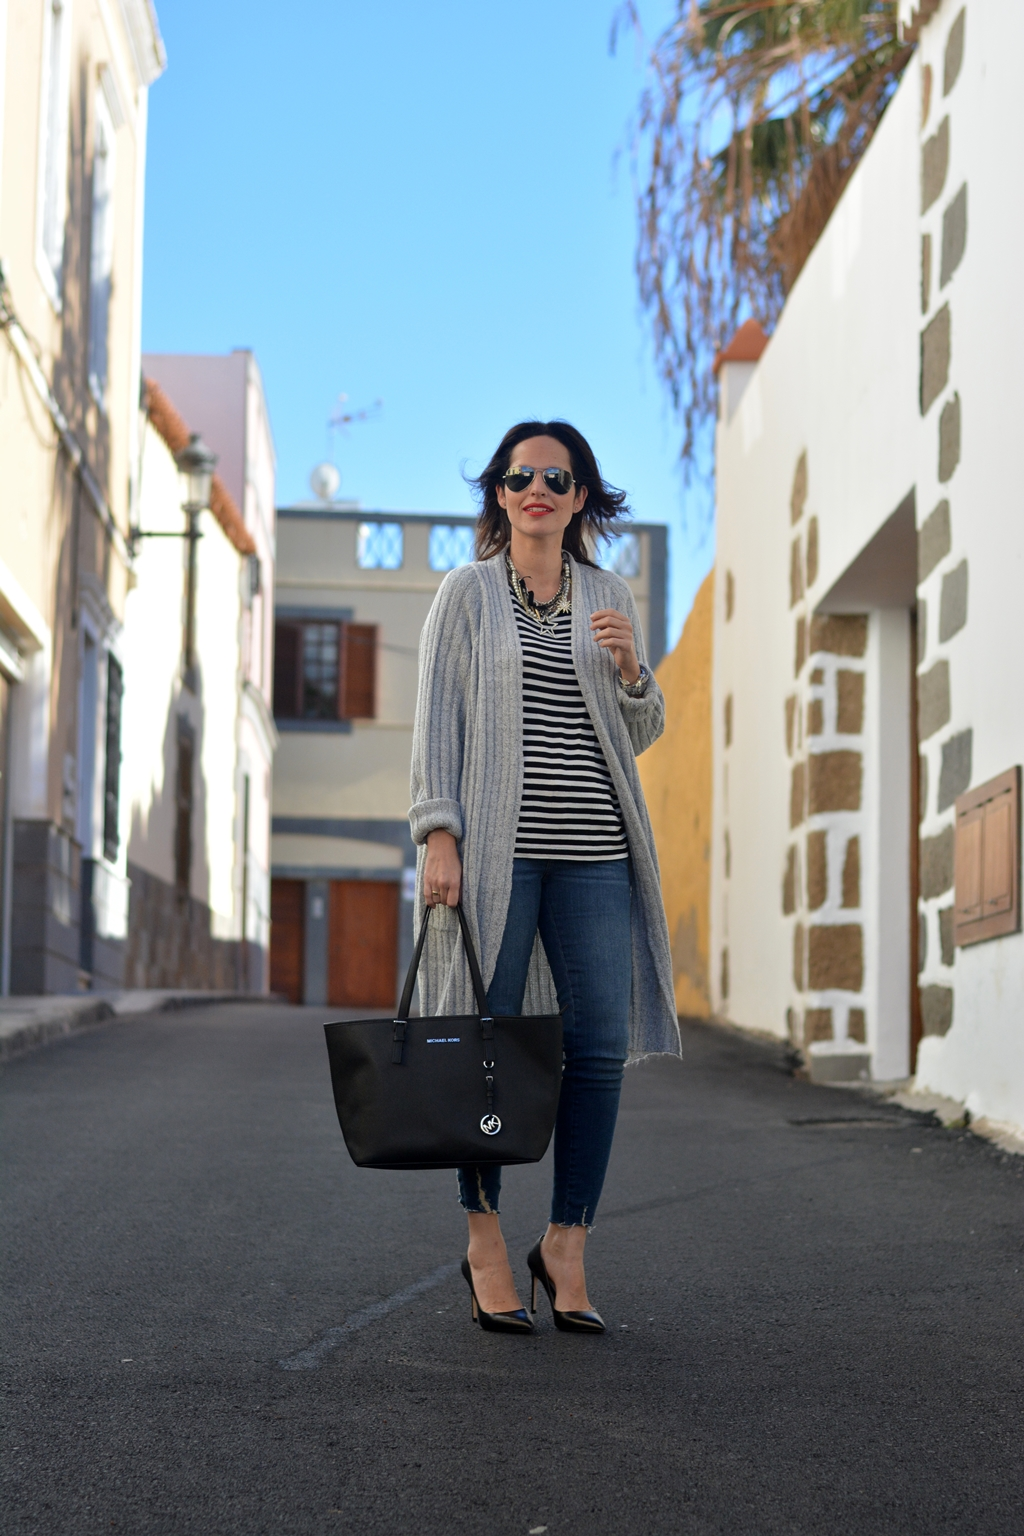 primark-cardigan-look-streetstyle-zara-outfit